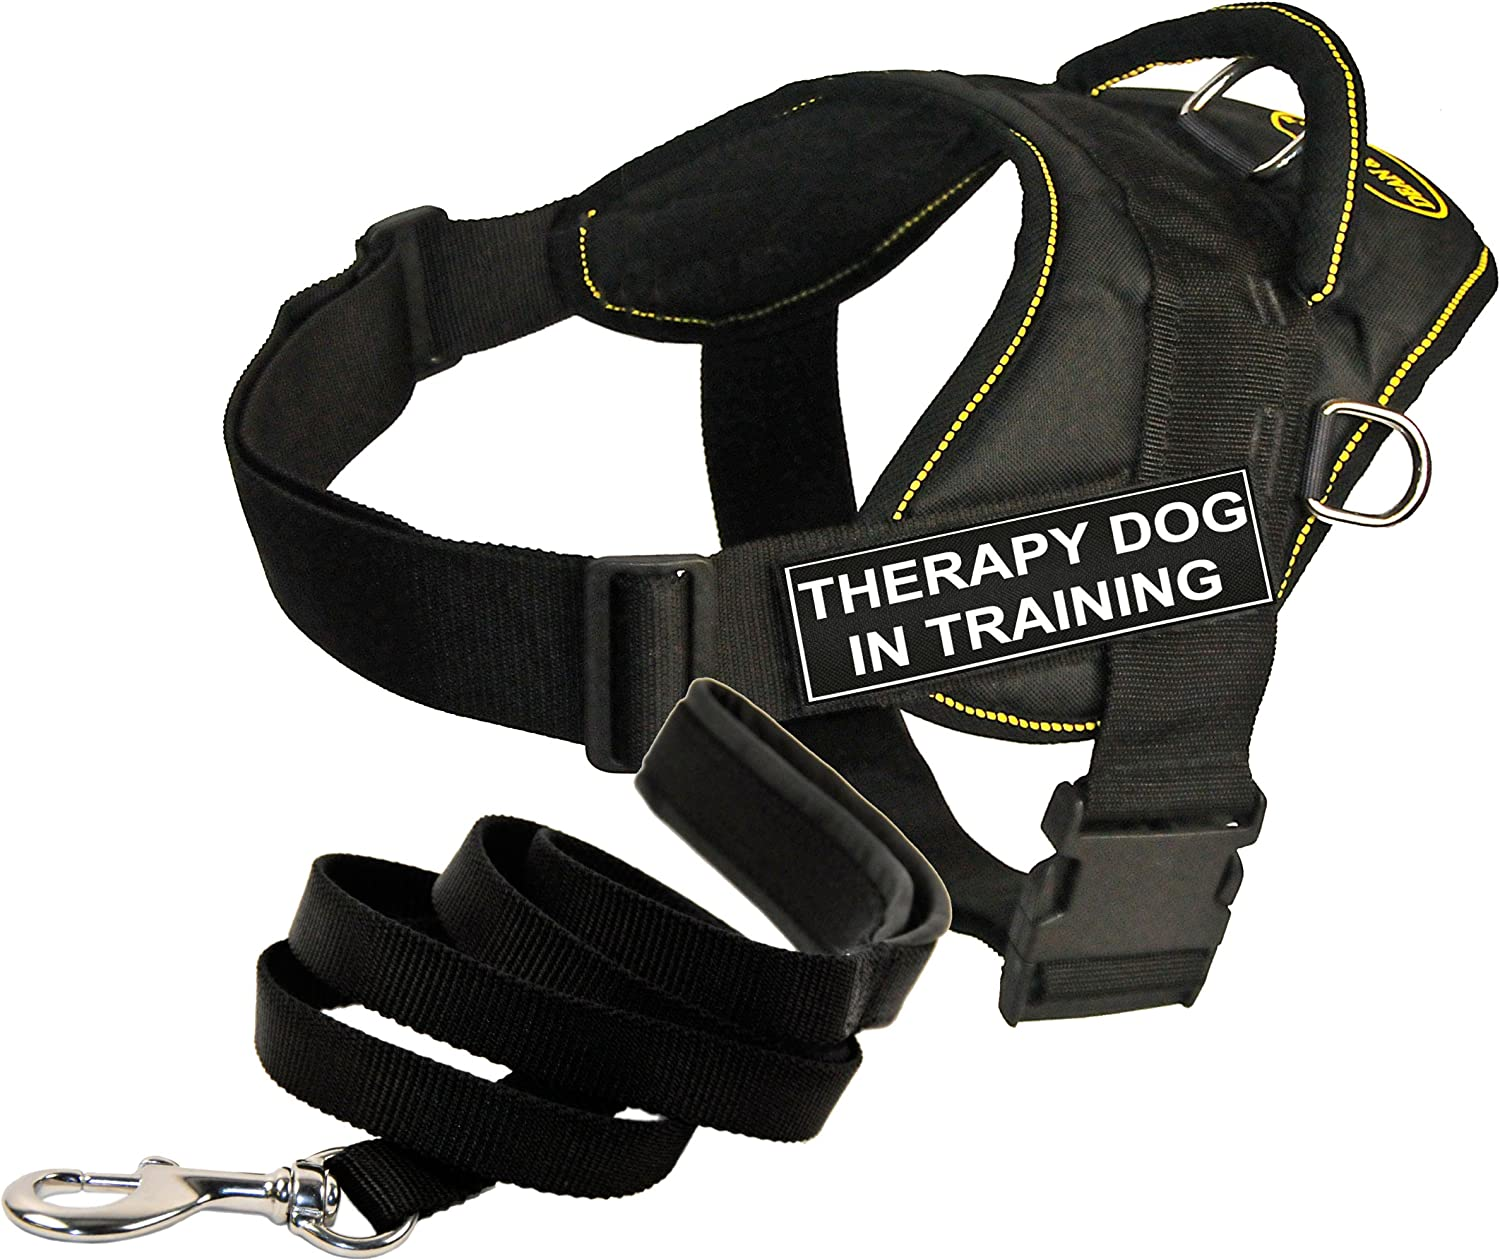 Dean and Tyler Bundle  One DT Fun Works  Harness, Therapy Dog In Training, Yellow Trim, XS + One Padded Puppy  Leash, 6 FT Stainless Snap  Black